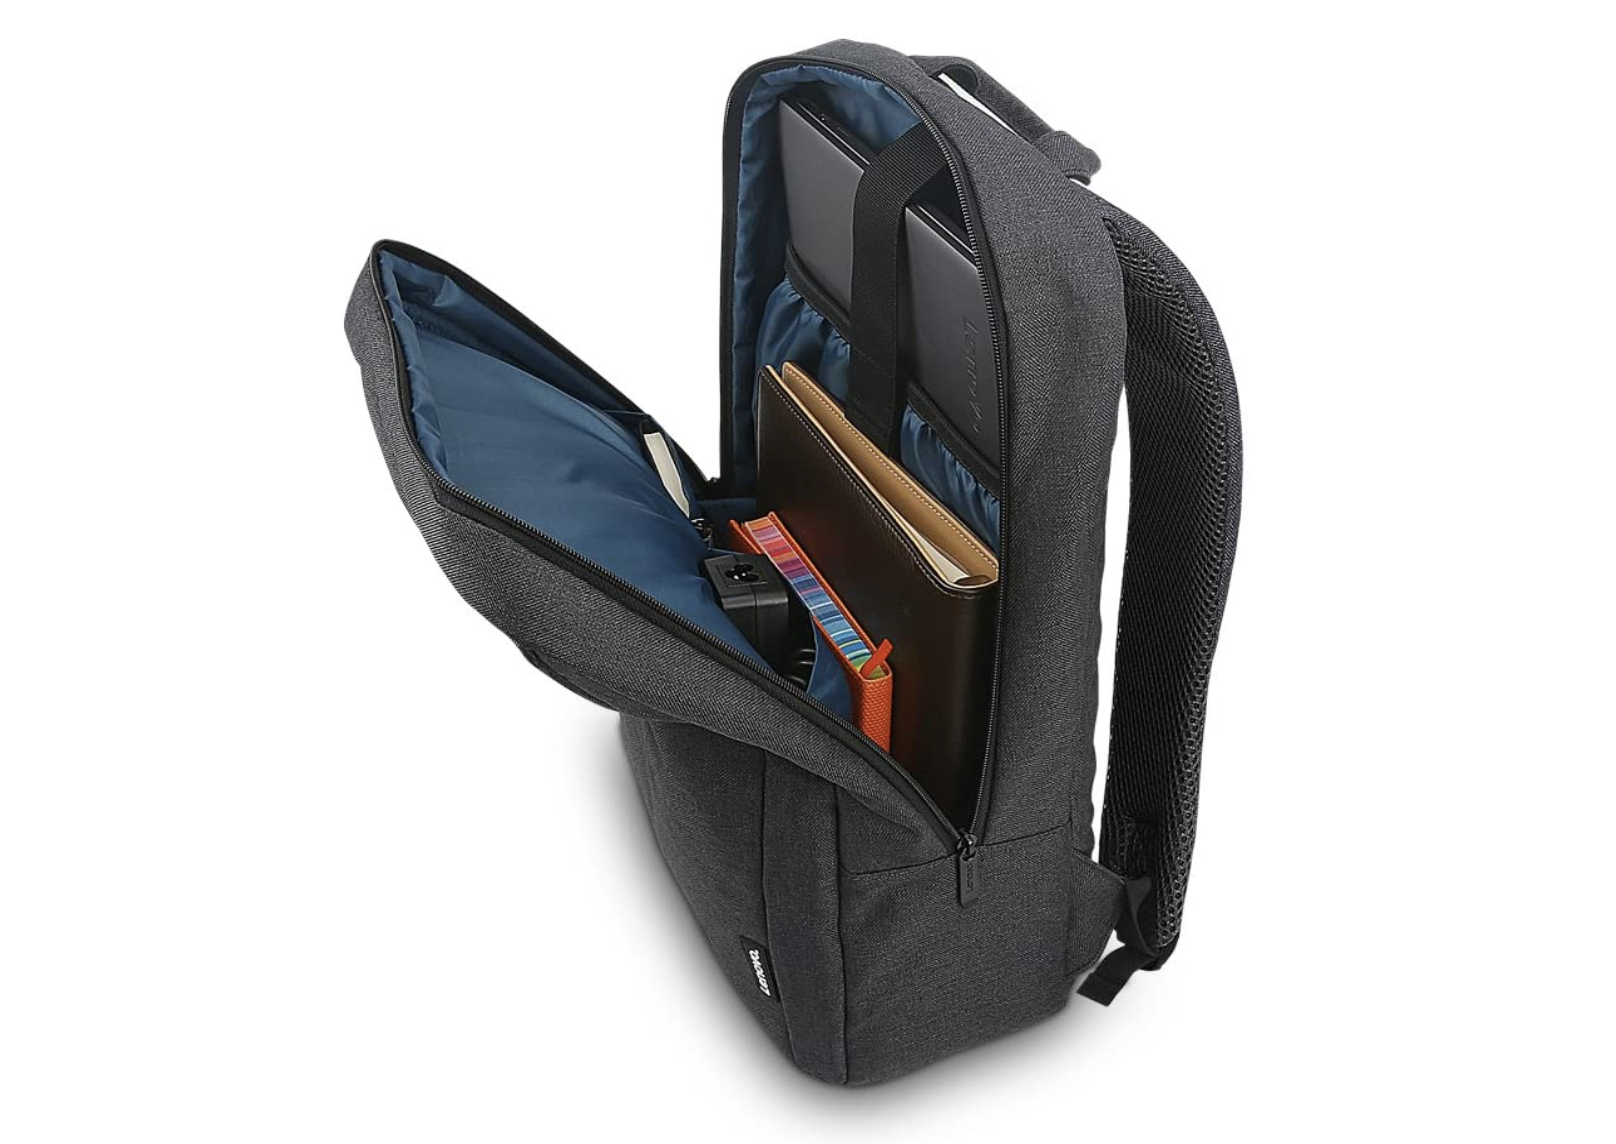 Secure your MacBook and iPad with a Lenovo Laptop Backpack at 41% Off